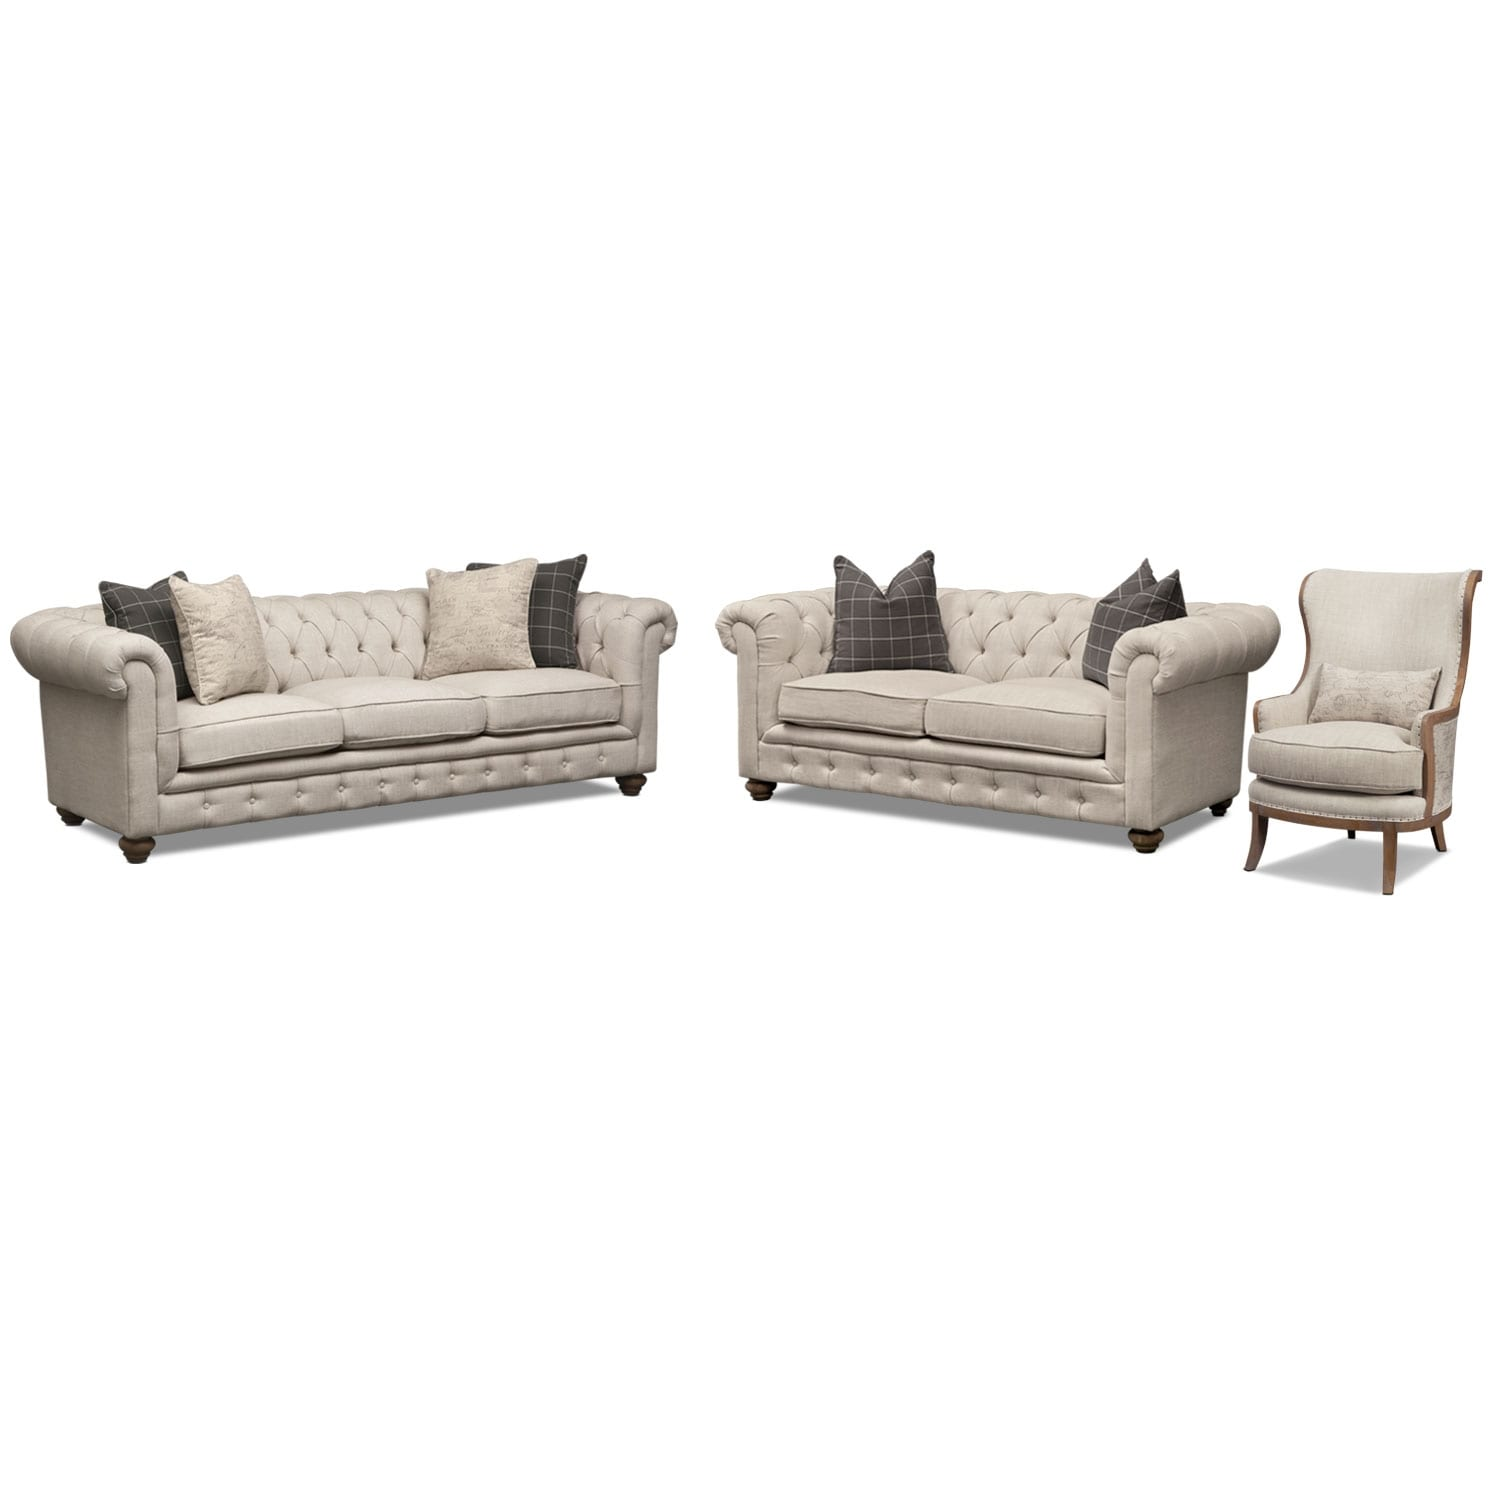 Living Room Furniture - Madeline Sofa, Loveseat and Framed Accent Chair Set - Beige